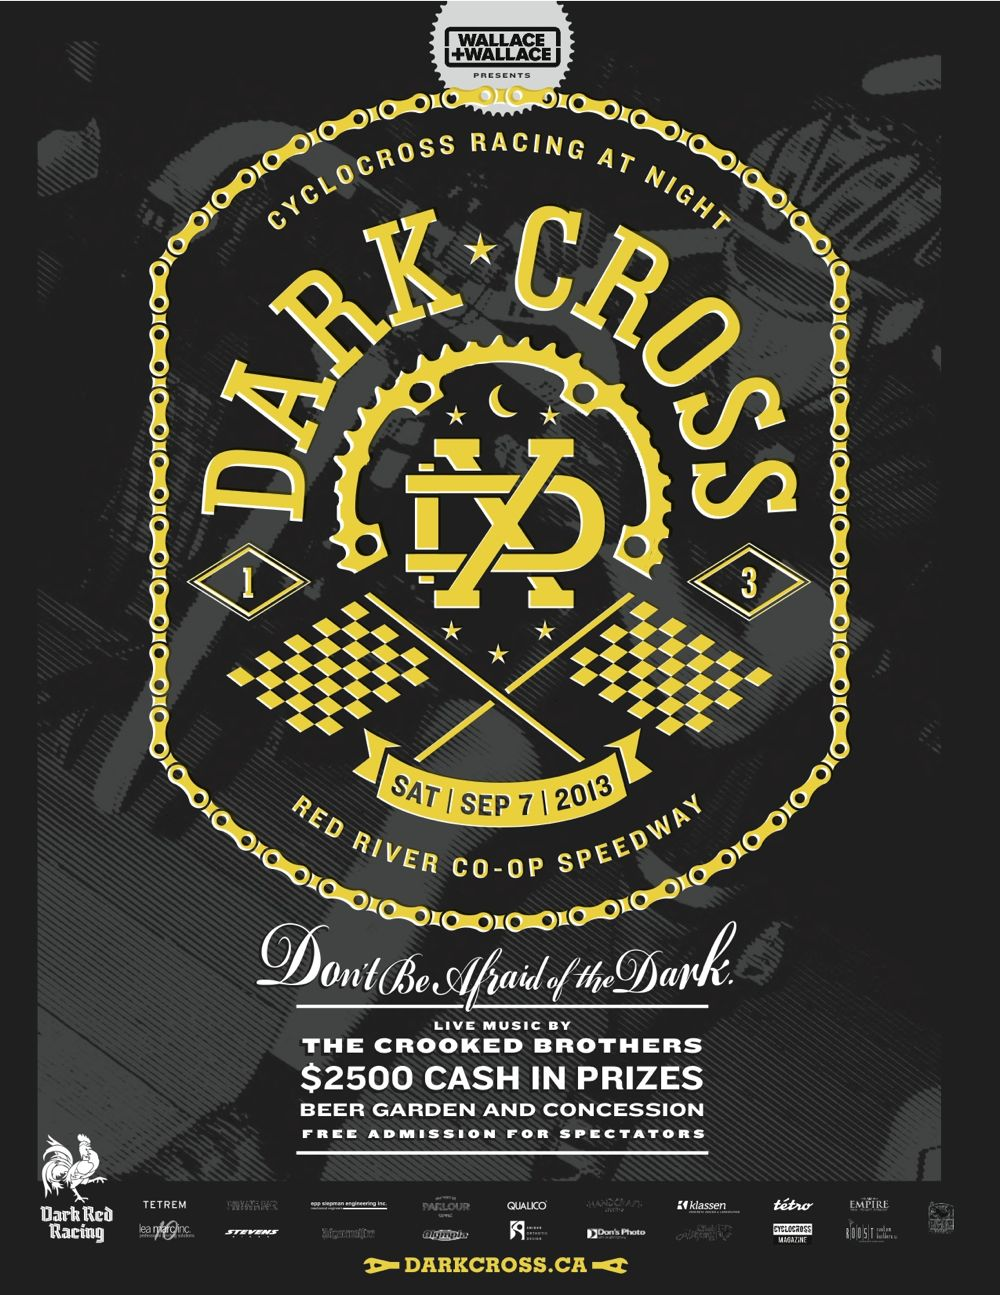 DDR_Dark Cross Poster_8.5x11_2013_01